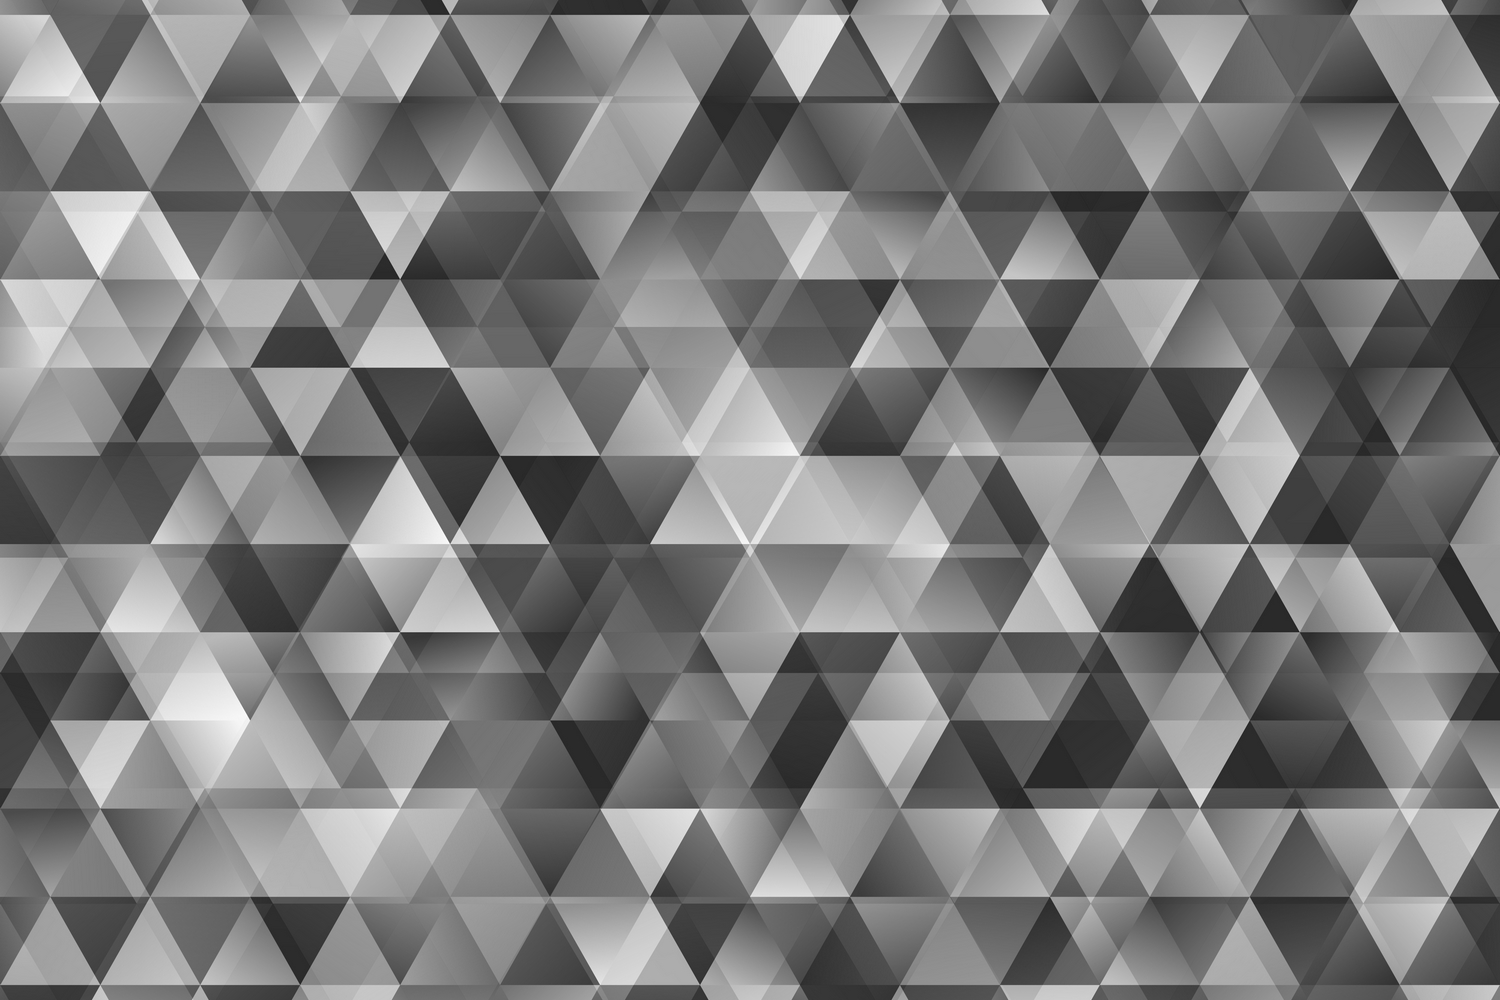 24 Gradient Polygon Backgrounds AI, EPS, JPG 5000x5000 example image 2